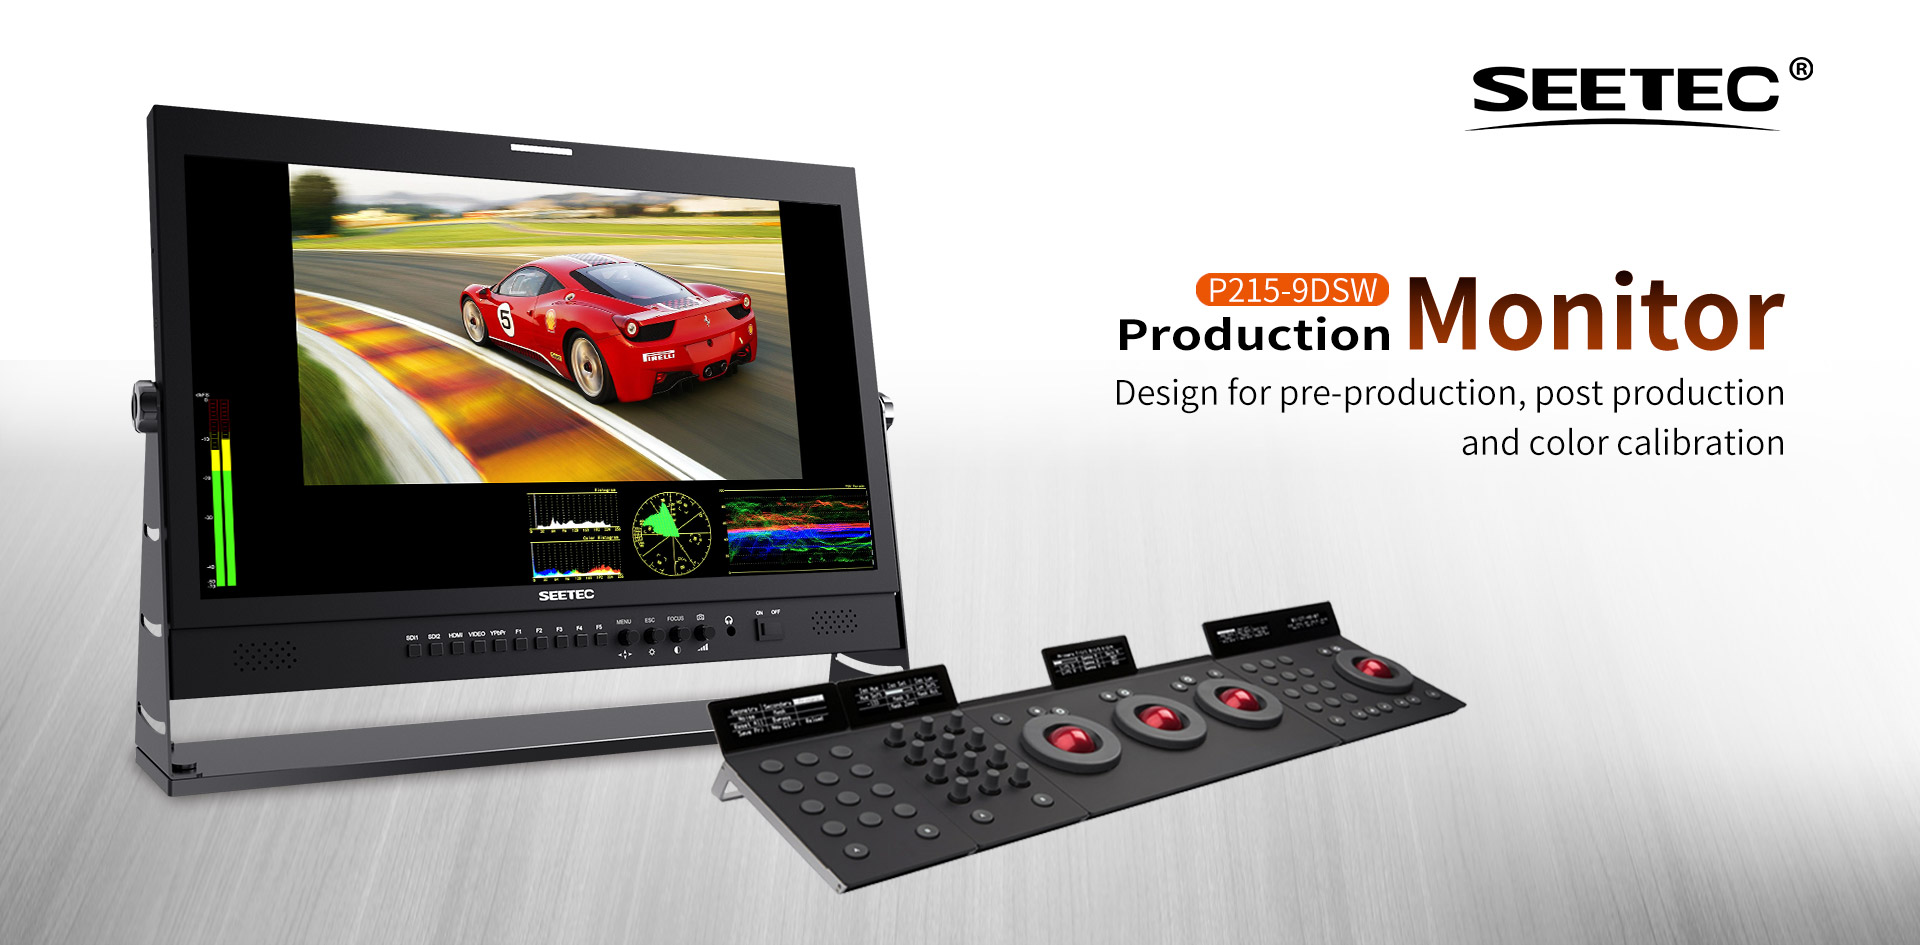 seetec 215 production monitor